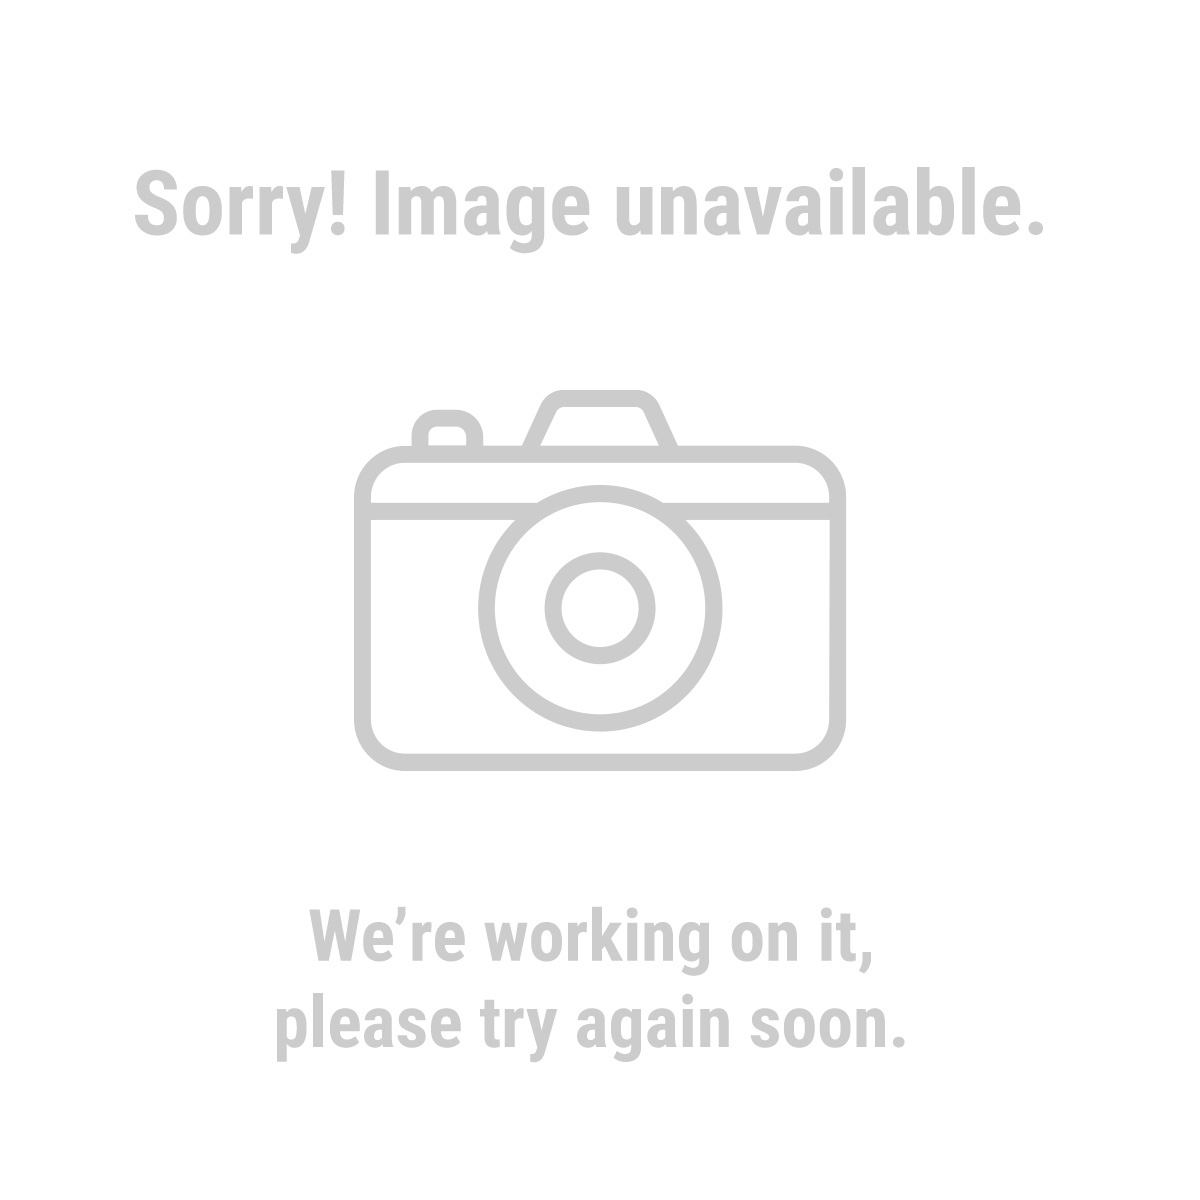 Pacific Hydrostar 68285 50 ft. Compact Electric Drain Cleaner